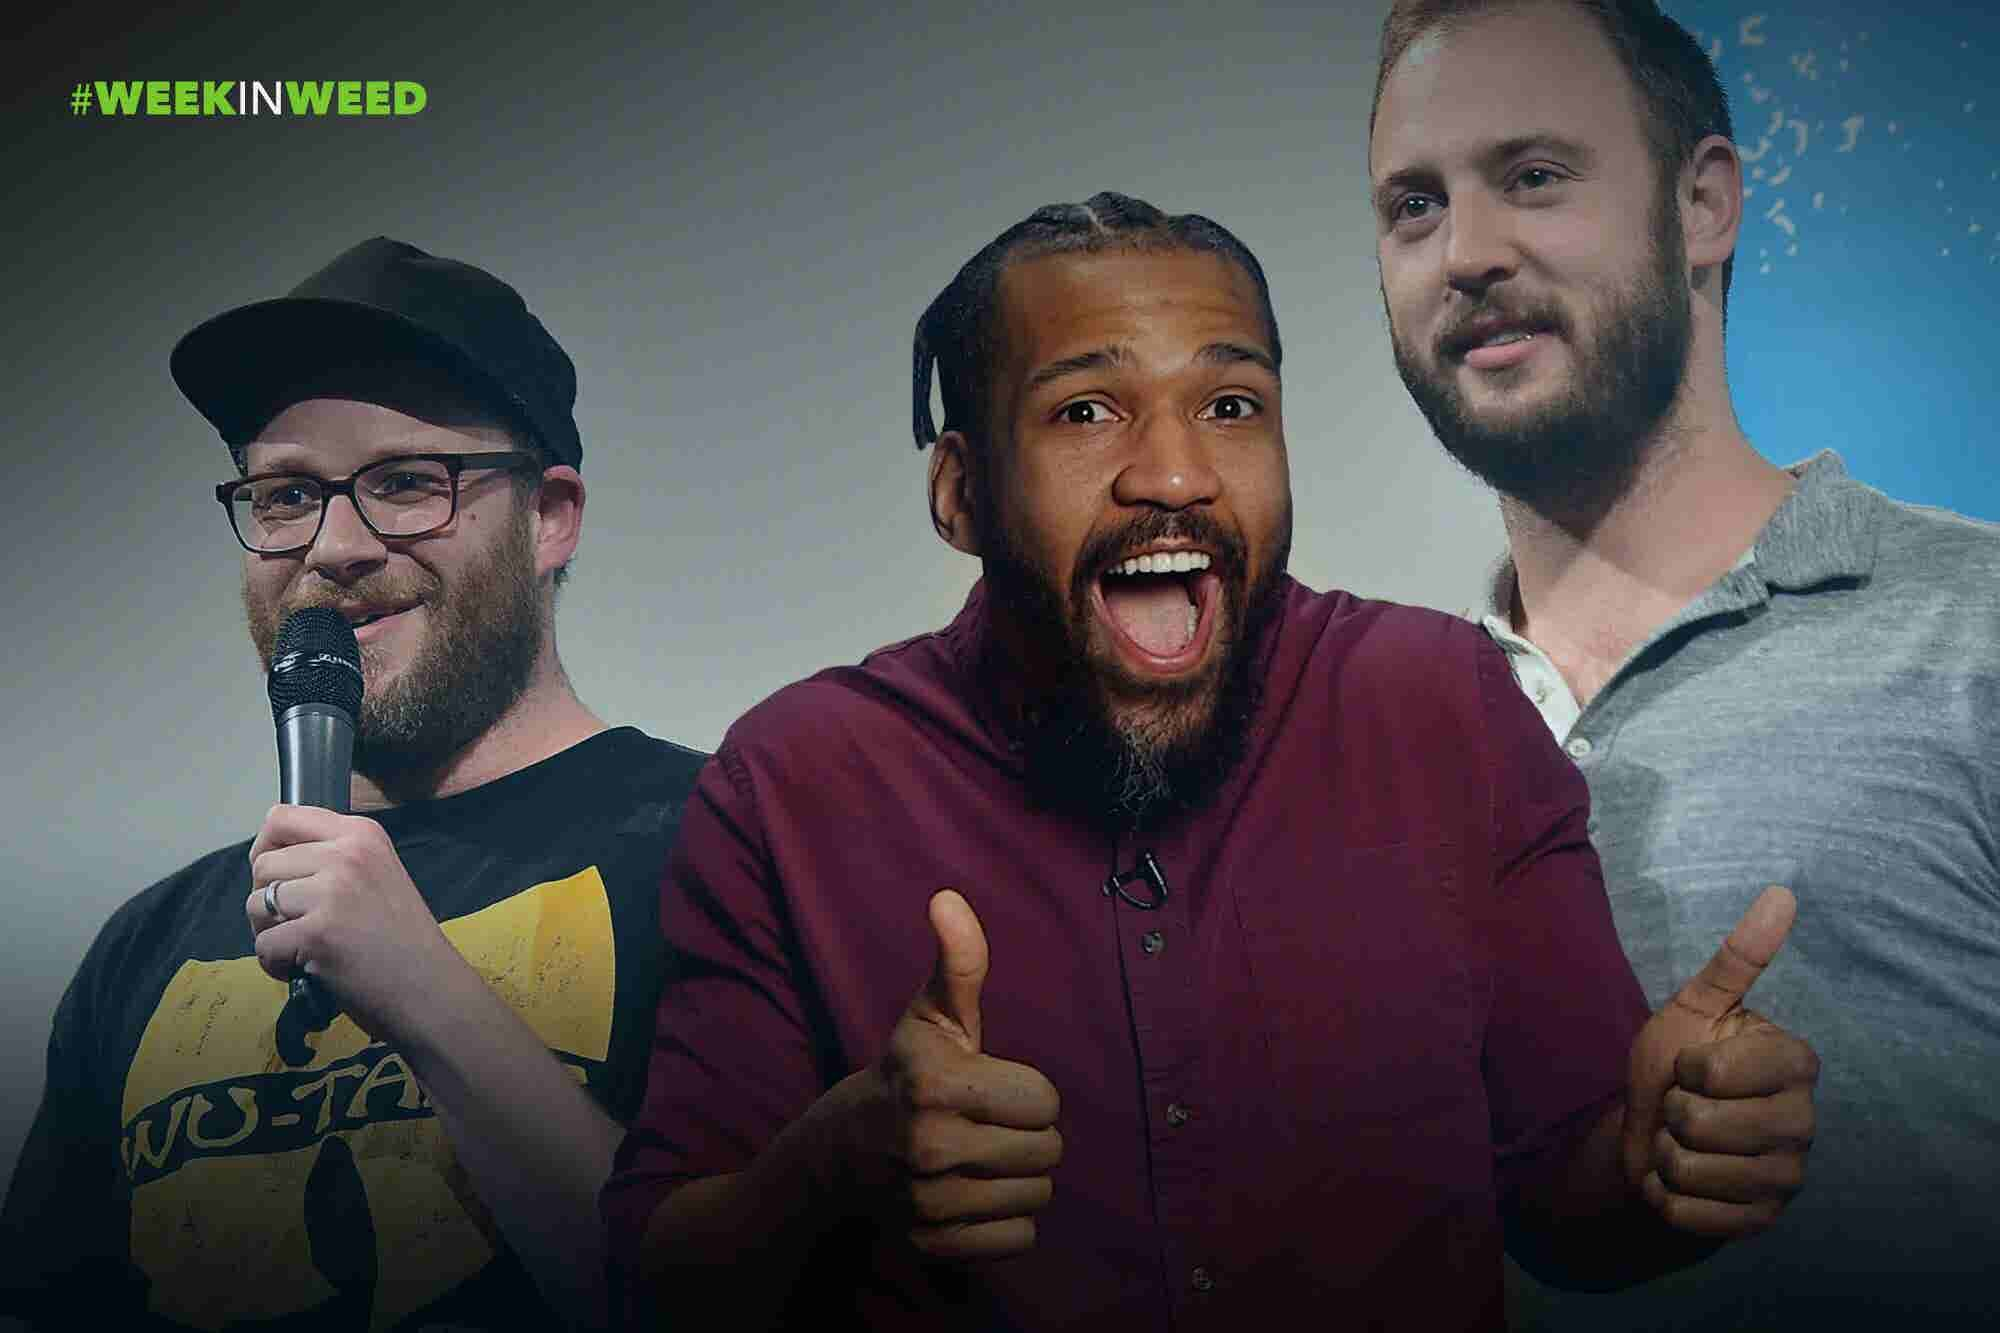 This Week in Weed: Seth Rogen Starts a Weed Company!